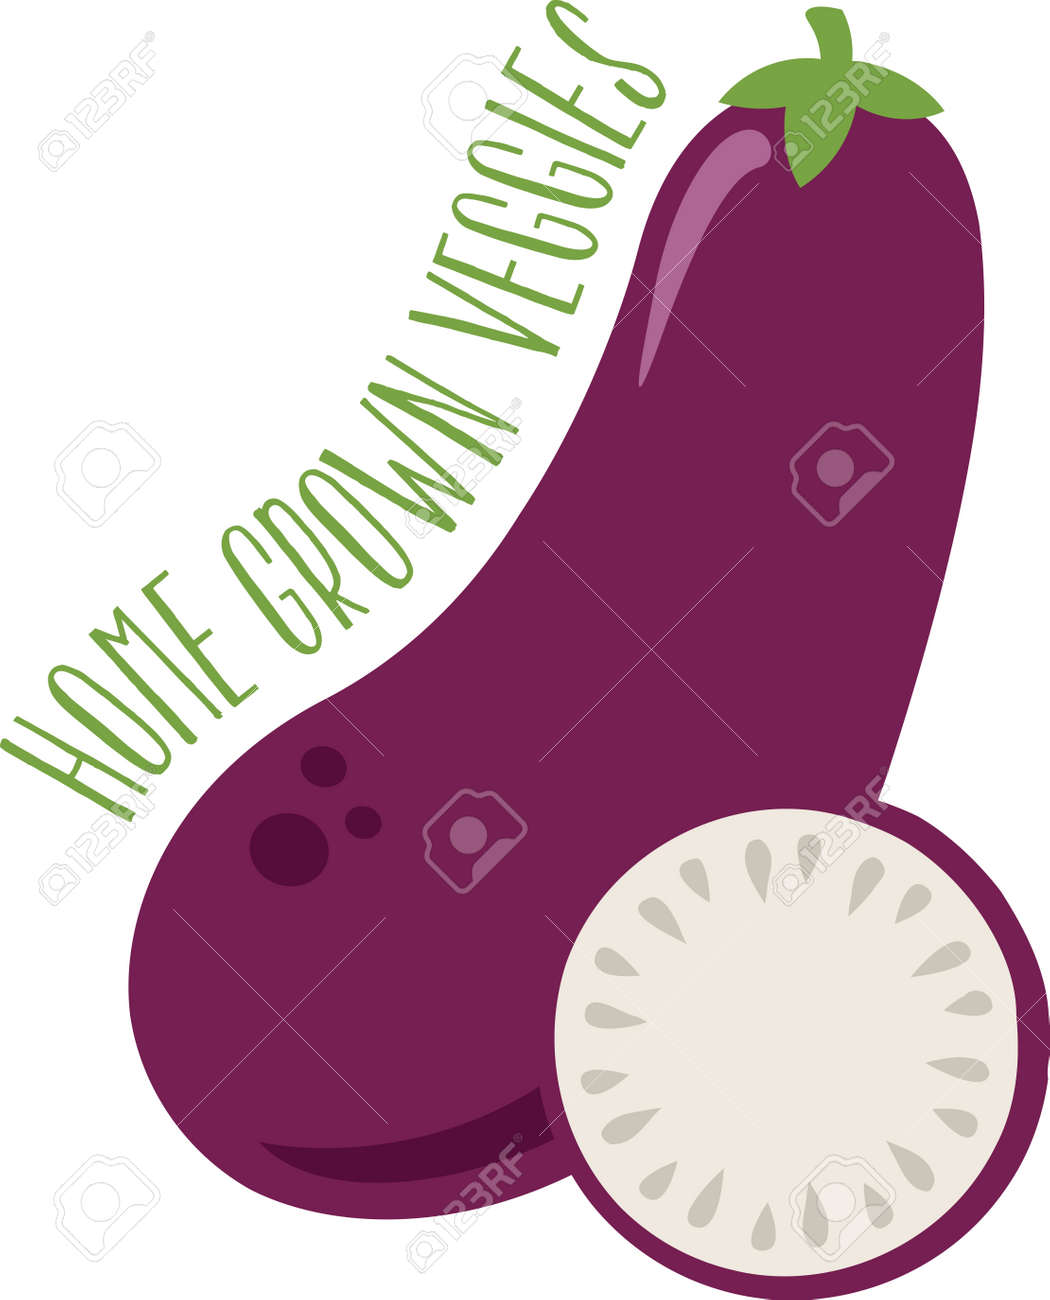 Delightful Eggplants Are An All Time Favorite When It Comes To Kitchen Decor. This  Design Will